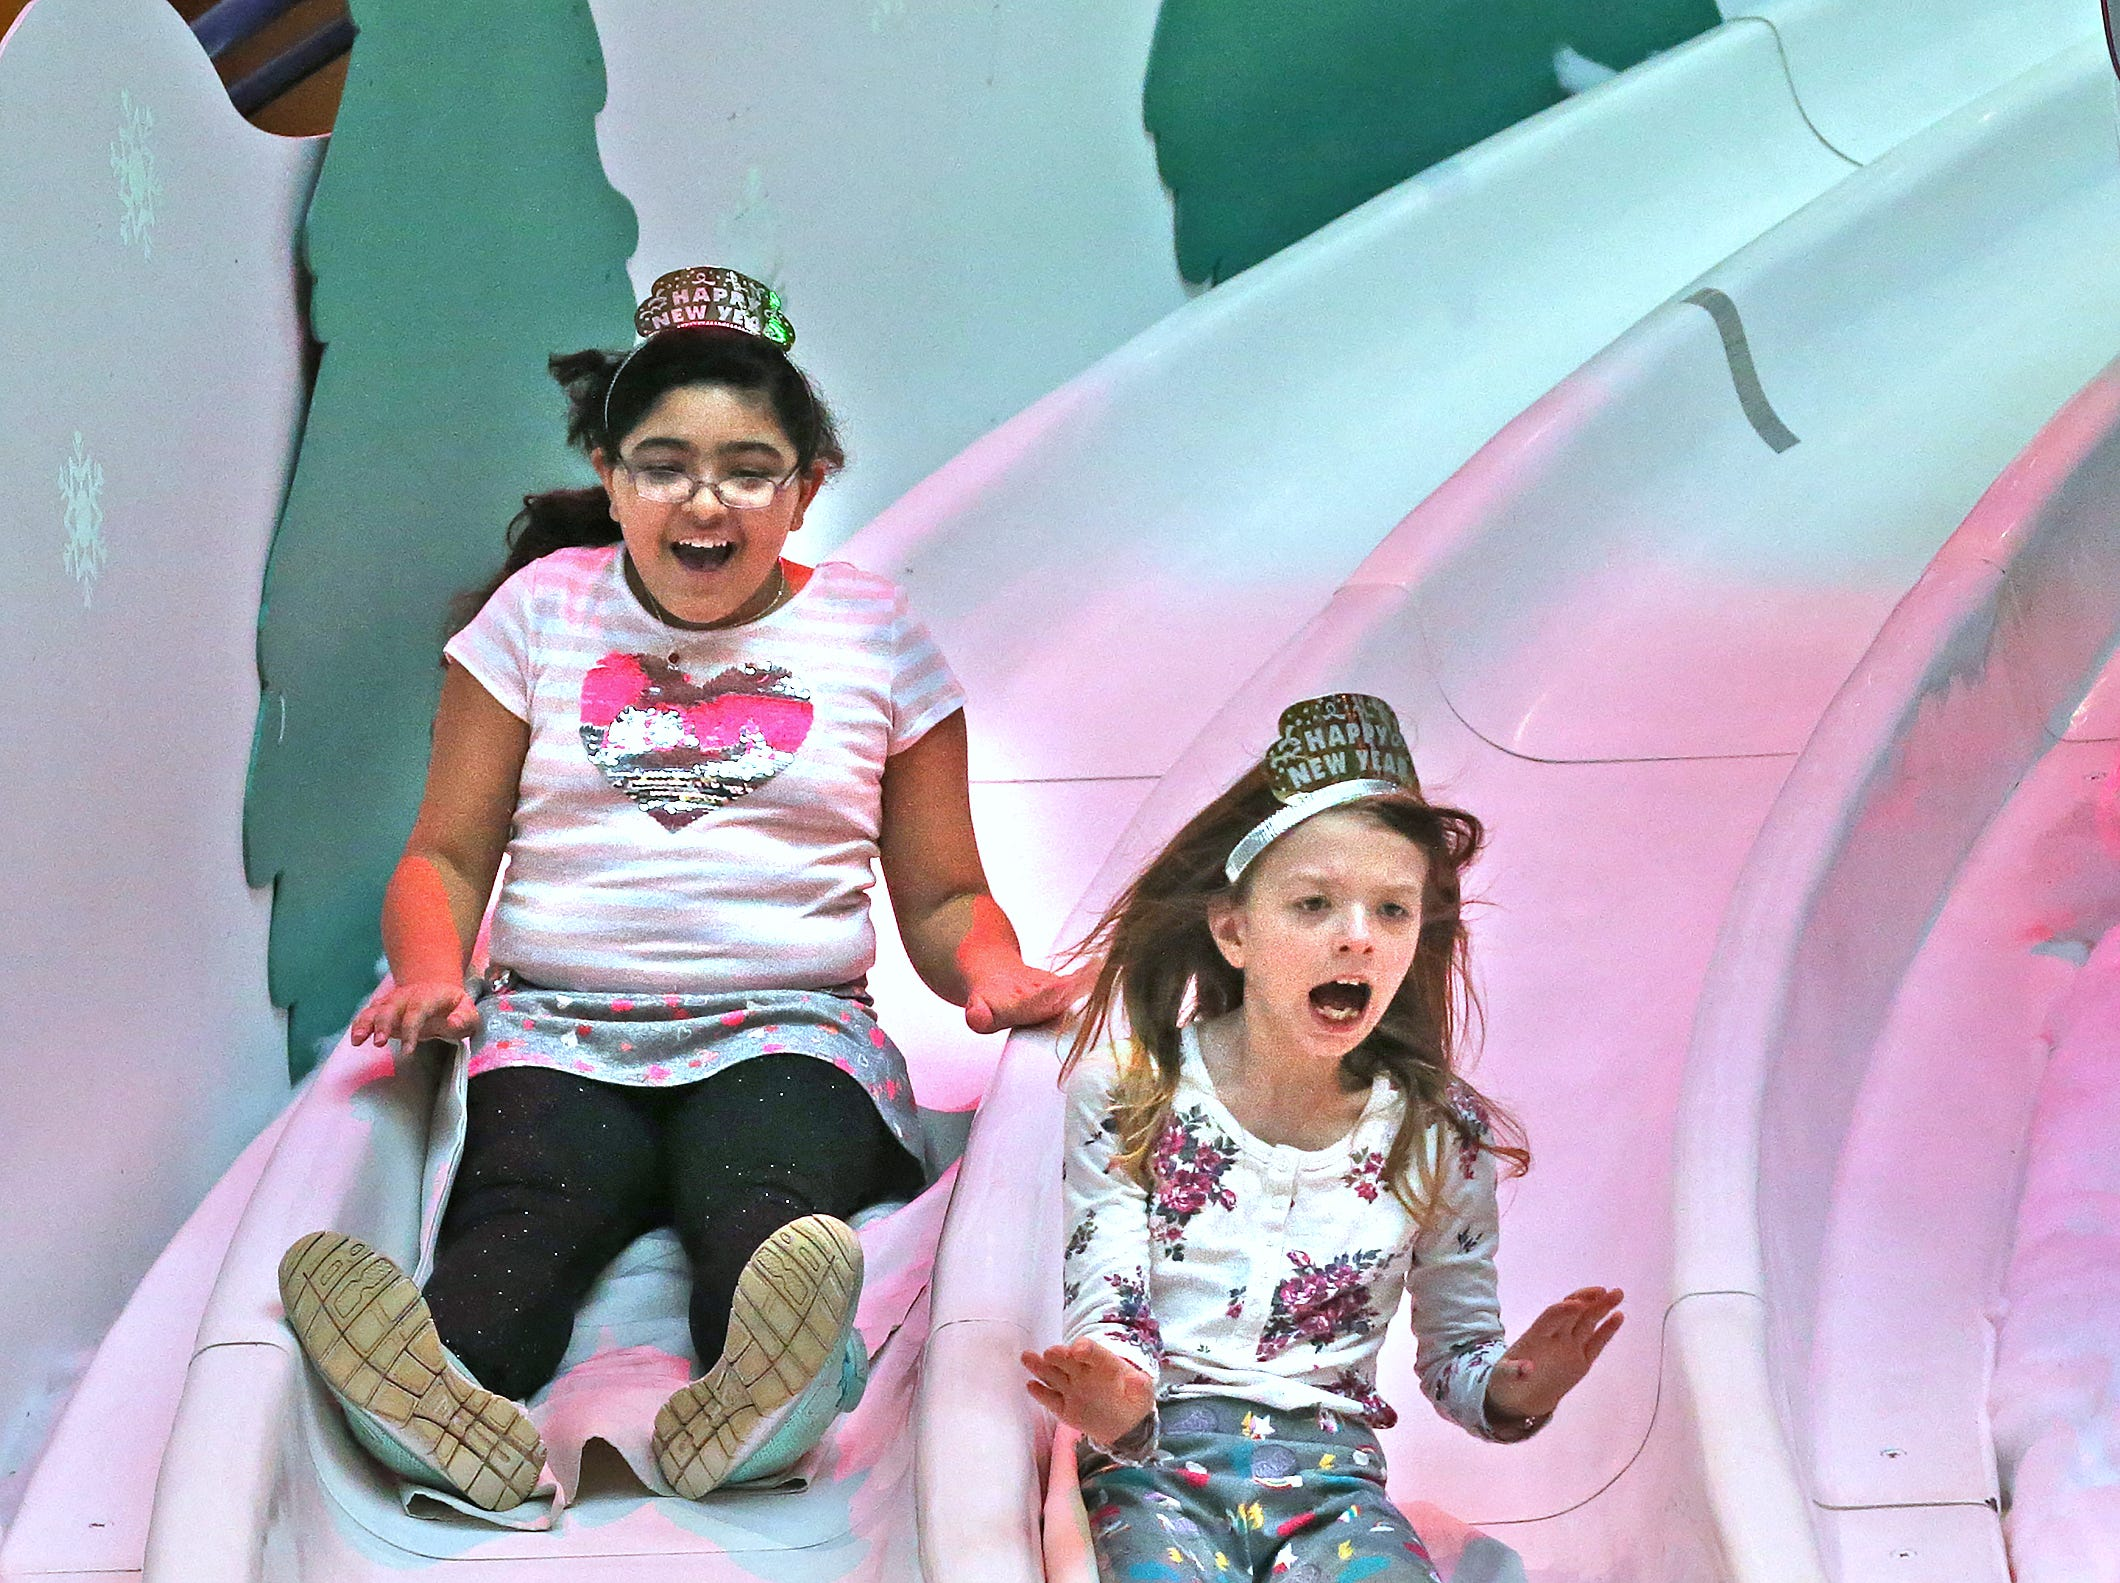 Eliora Coin, left, and Emily Crawford fly down the slide at the Countdown to noon celebration at the Children's Museum of Indianapolis, Monday, Dec. 31, 2018.